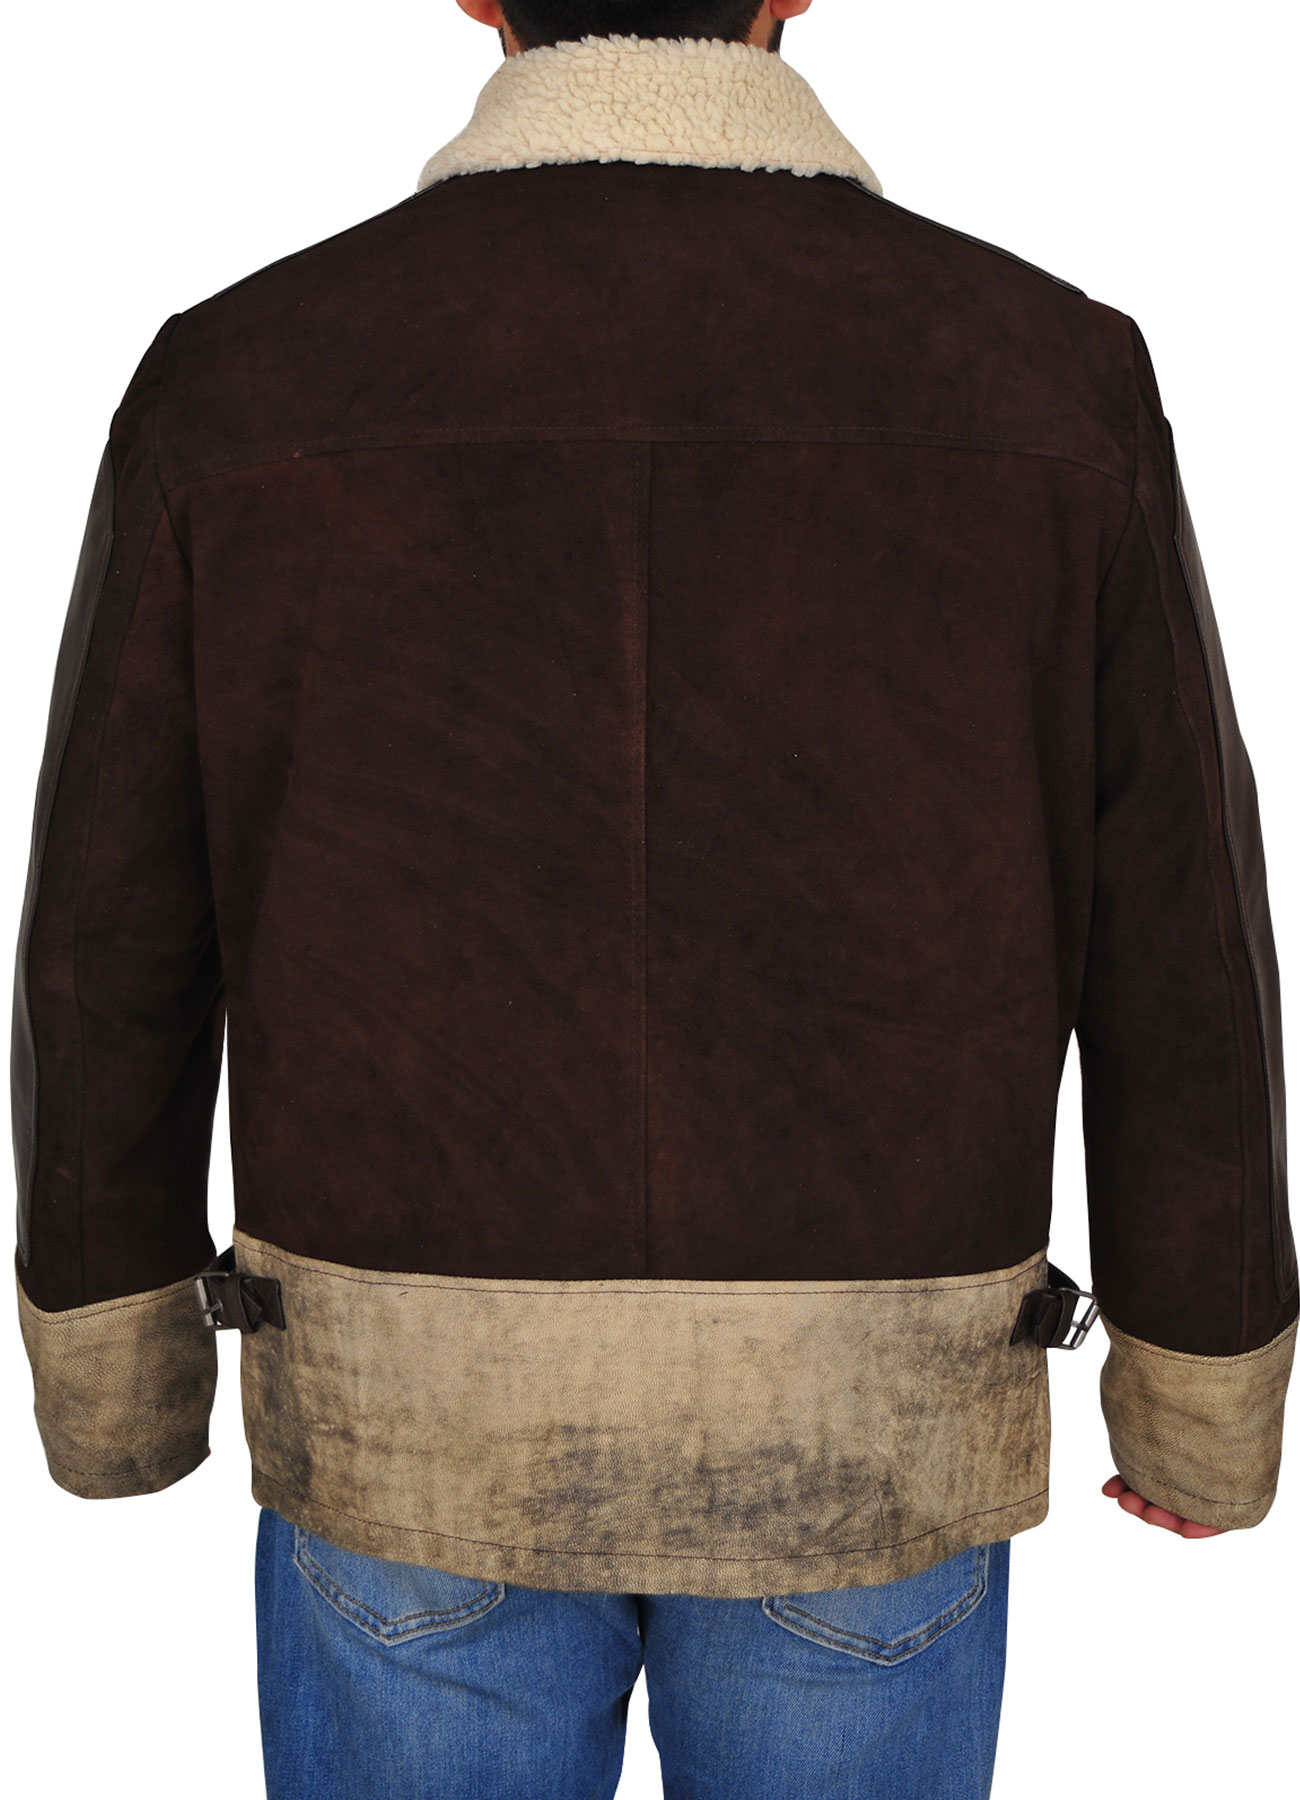 Men's Fashion Brown Suede Leather Jacket